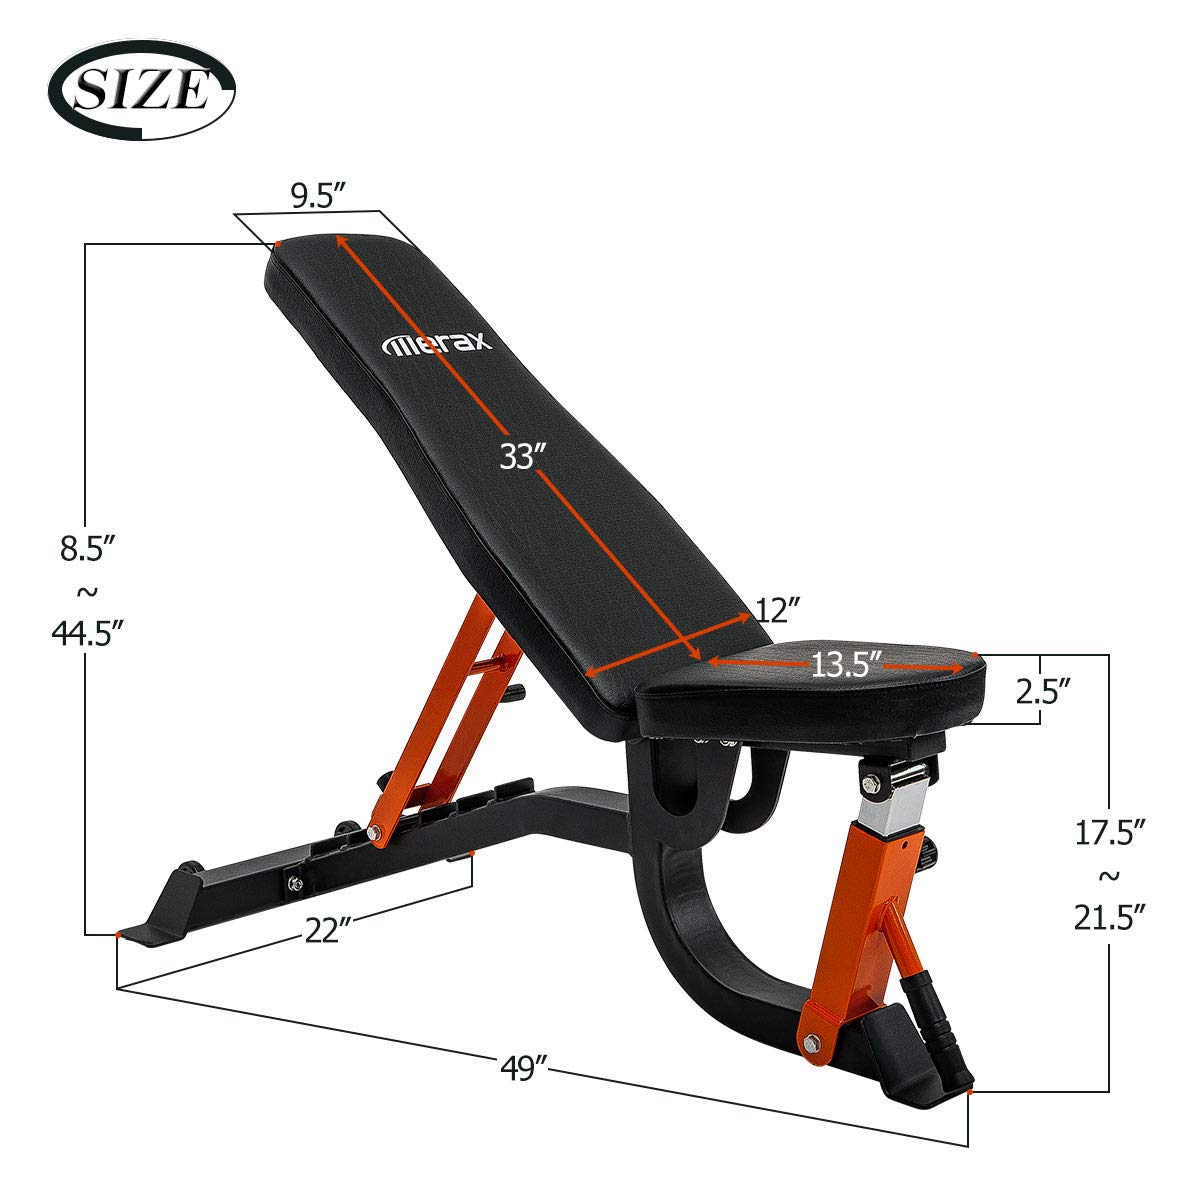 Merax Adjustable Weight Bench 600 LBS Weight Capacity 6 Position Incline Decline Utility Bench with High Density Foam Padding for Home Gym Strength Training